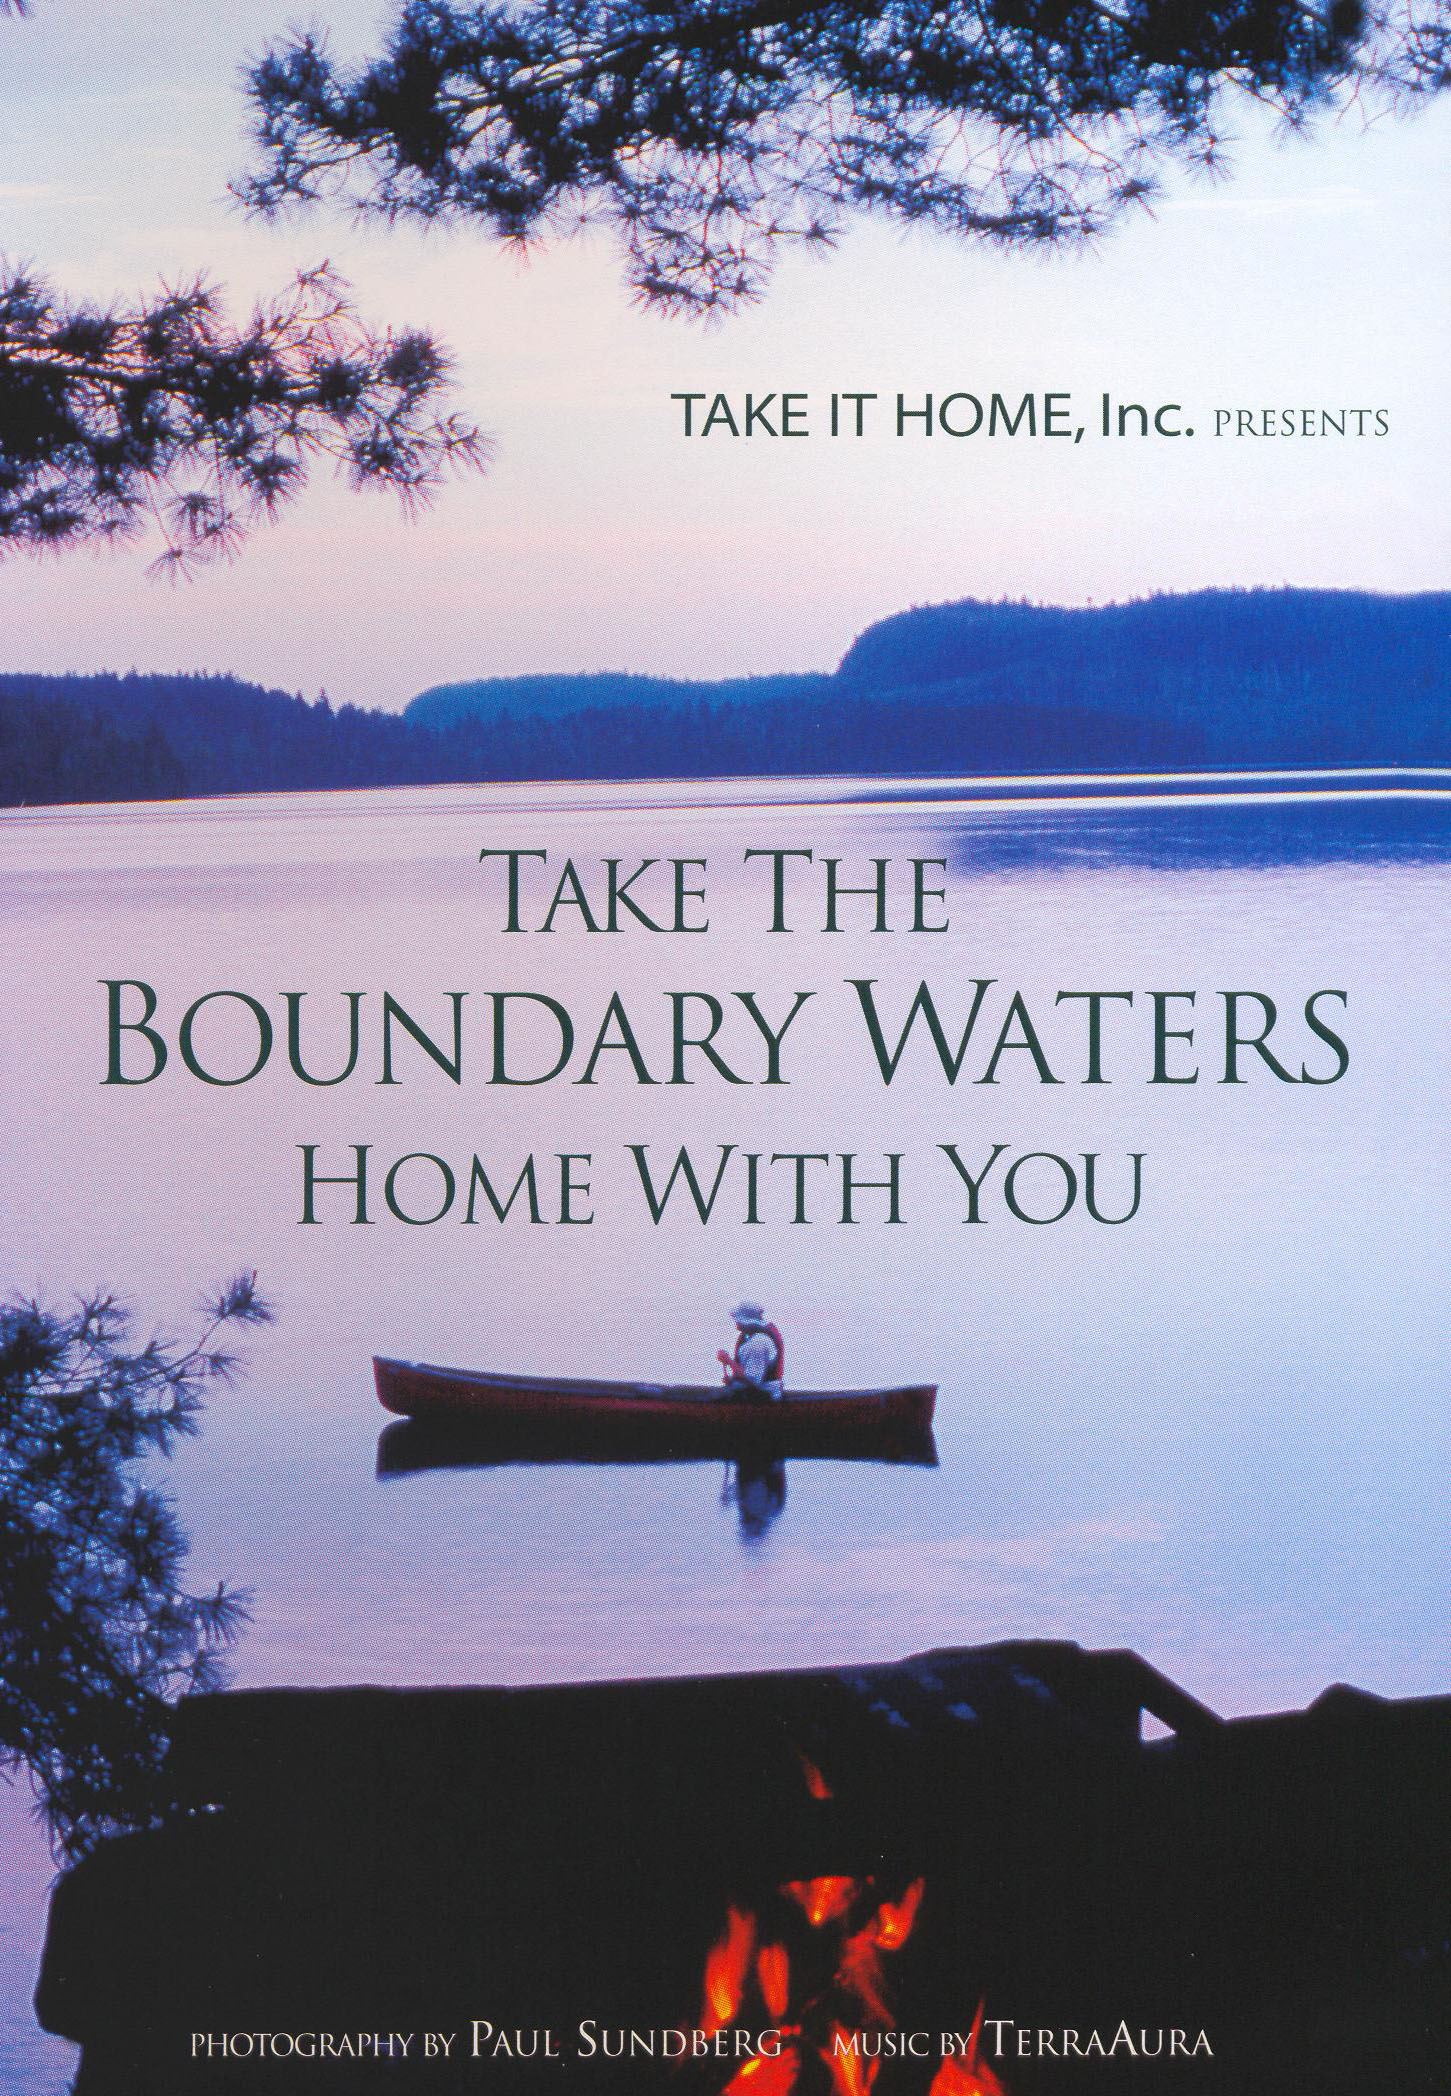 Take the Boundary Waters Home with You (2004)